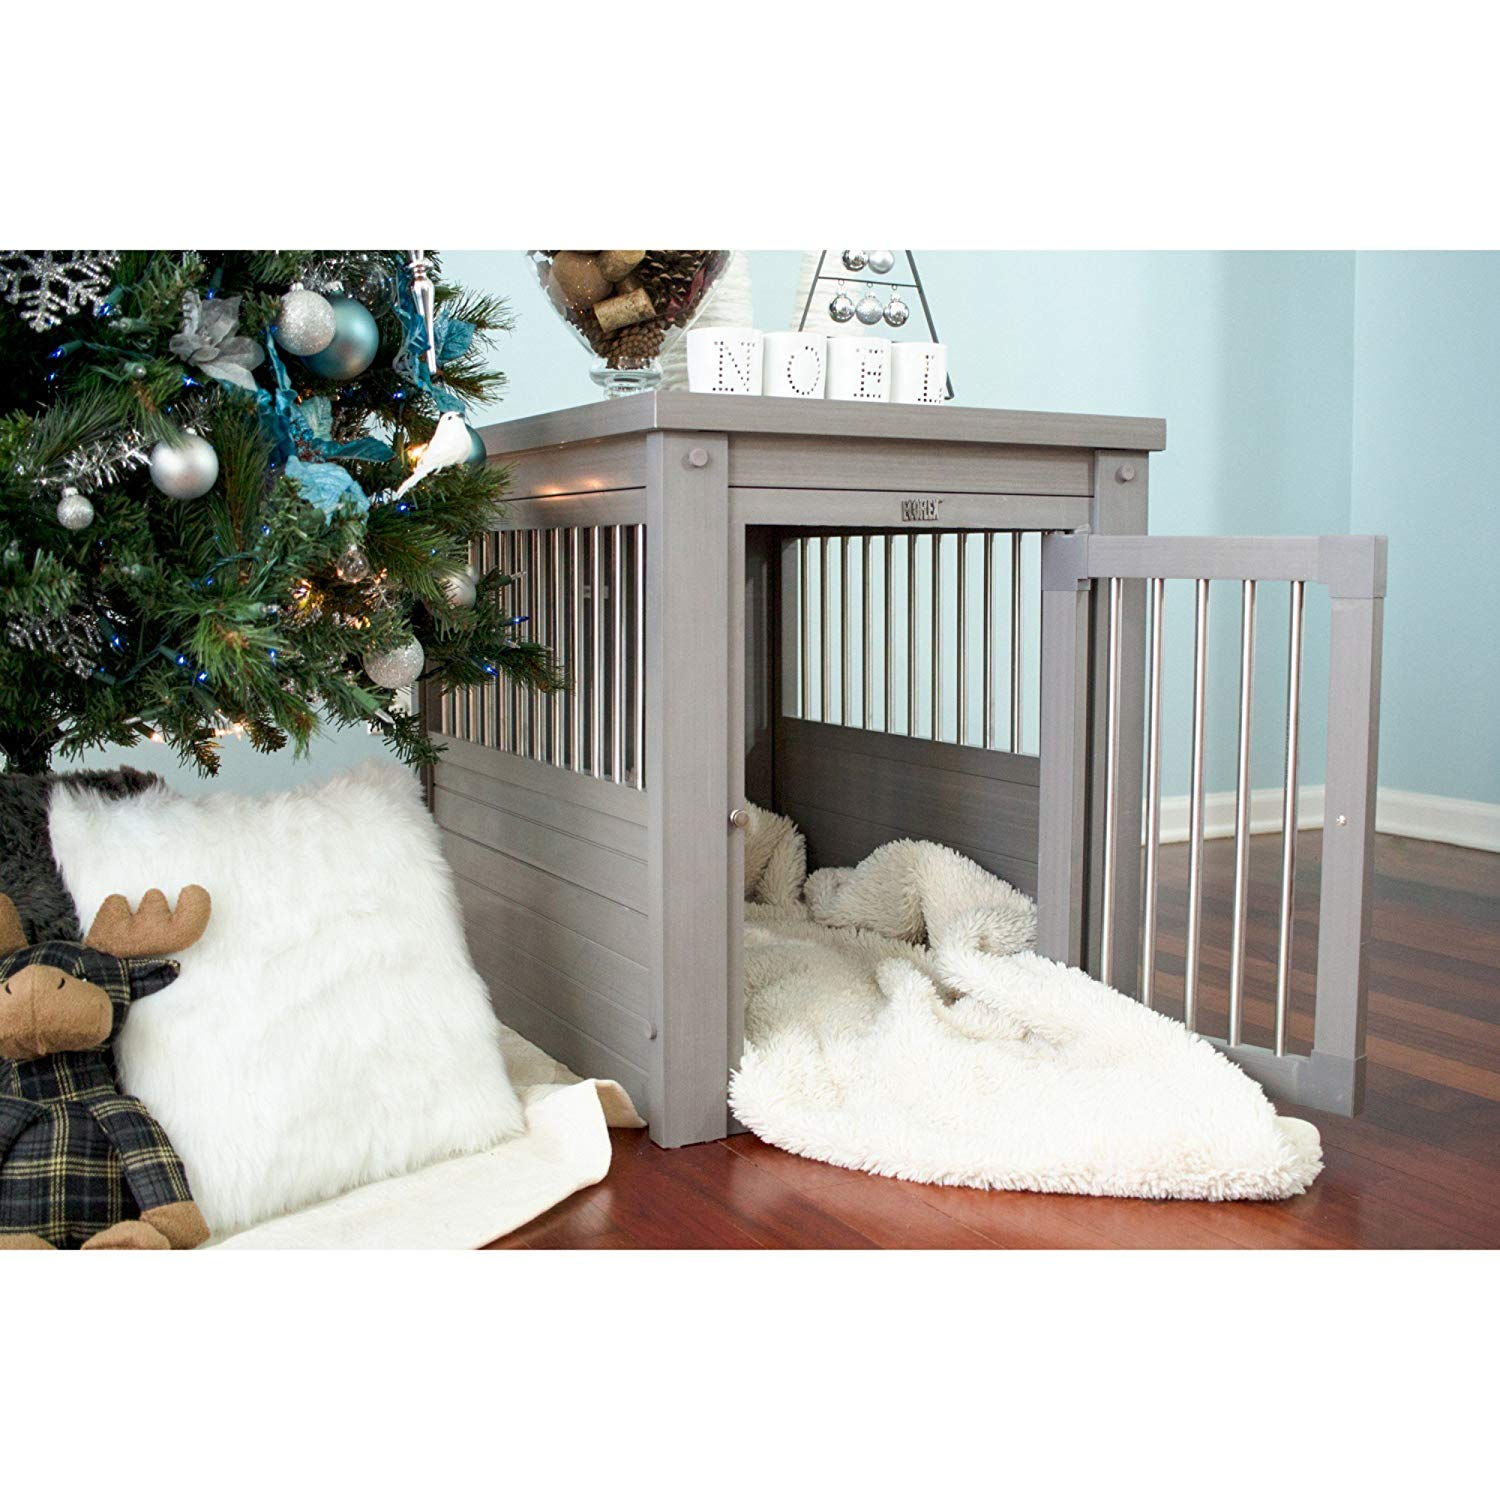 ecoflex pet crate end table supplies tables and side glass top for coffee grey lamp oak furniture chairs pipe fitting powell loft with desk patio fireplace homesense cabinets